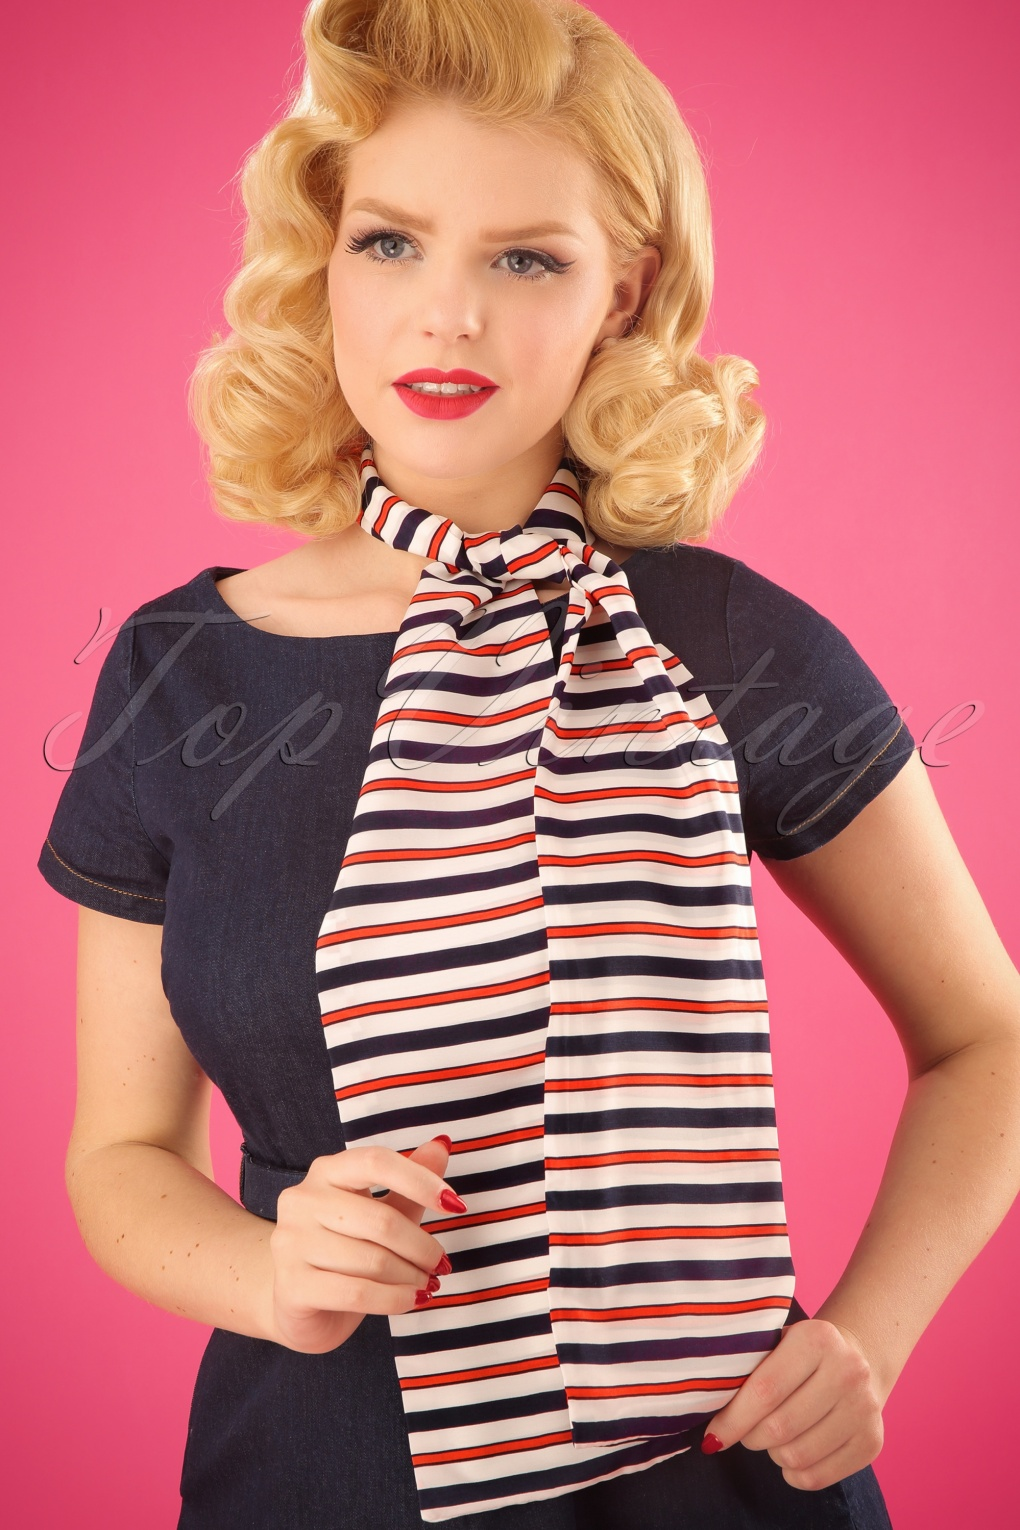 Vintage Scarf Styles -1920s to 1960s 50s Hugo Striped Scarf in White and Navy £15.73 AT vintagedancer.com